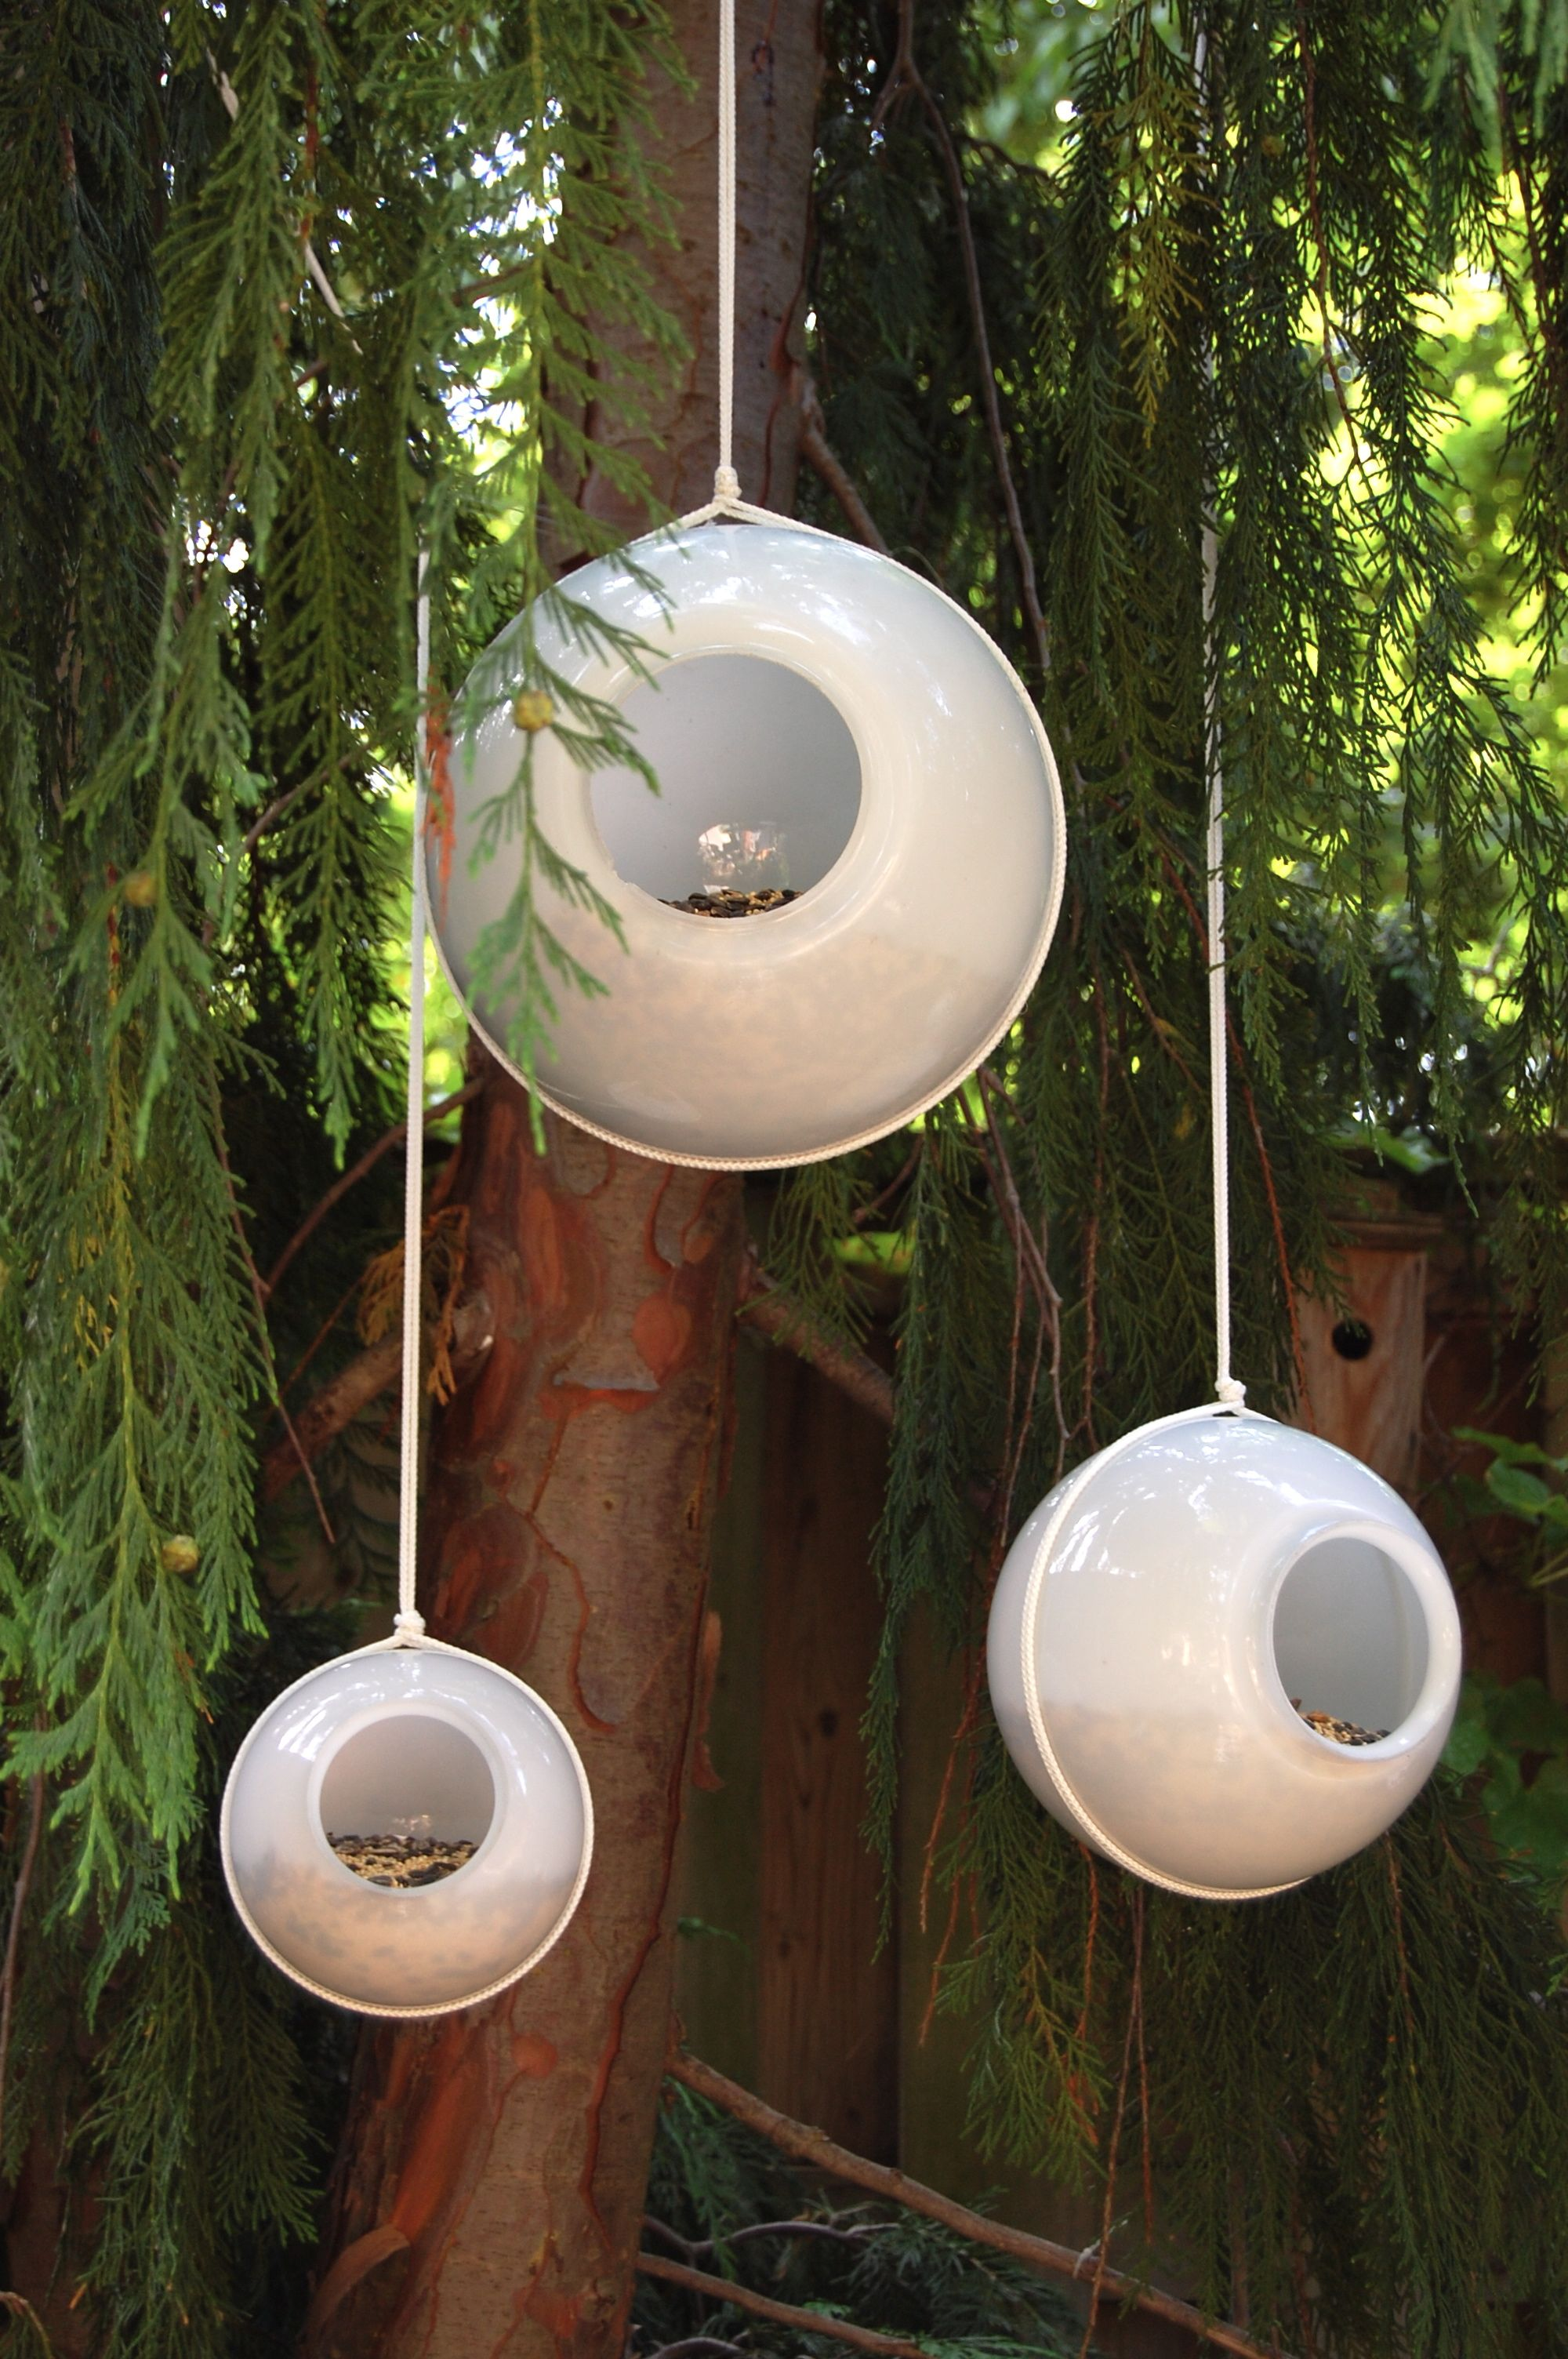 Kugellampe Garten Outdoor Orbs Part Ii How To Make A Birdfeeder From Glass Shades